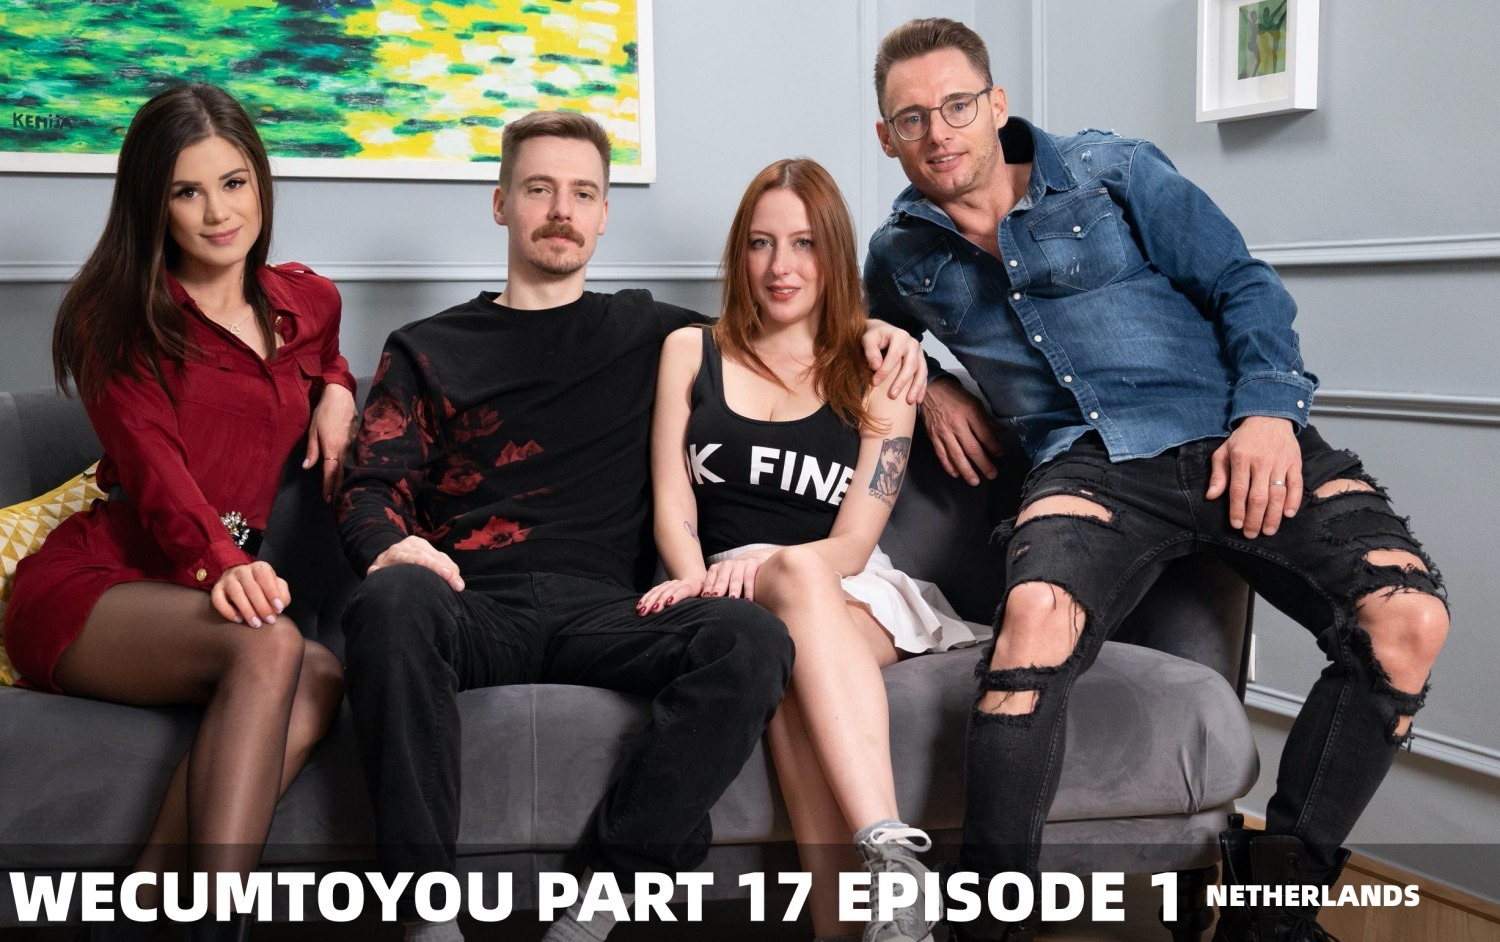 WECUMTOYOU 17 Episode 1 Netherlands